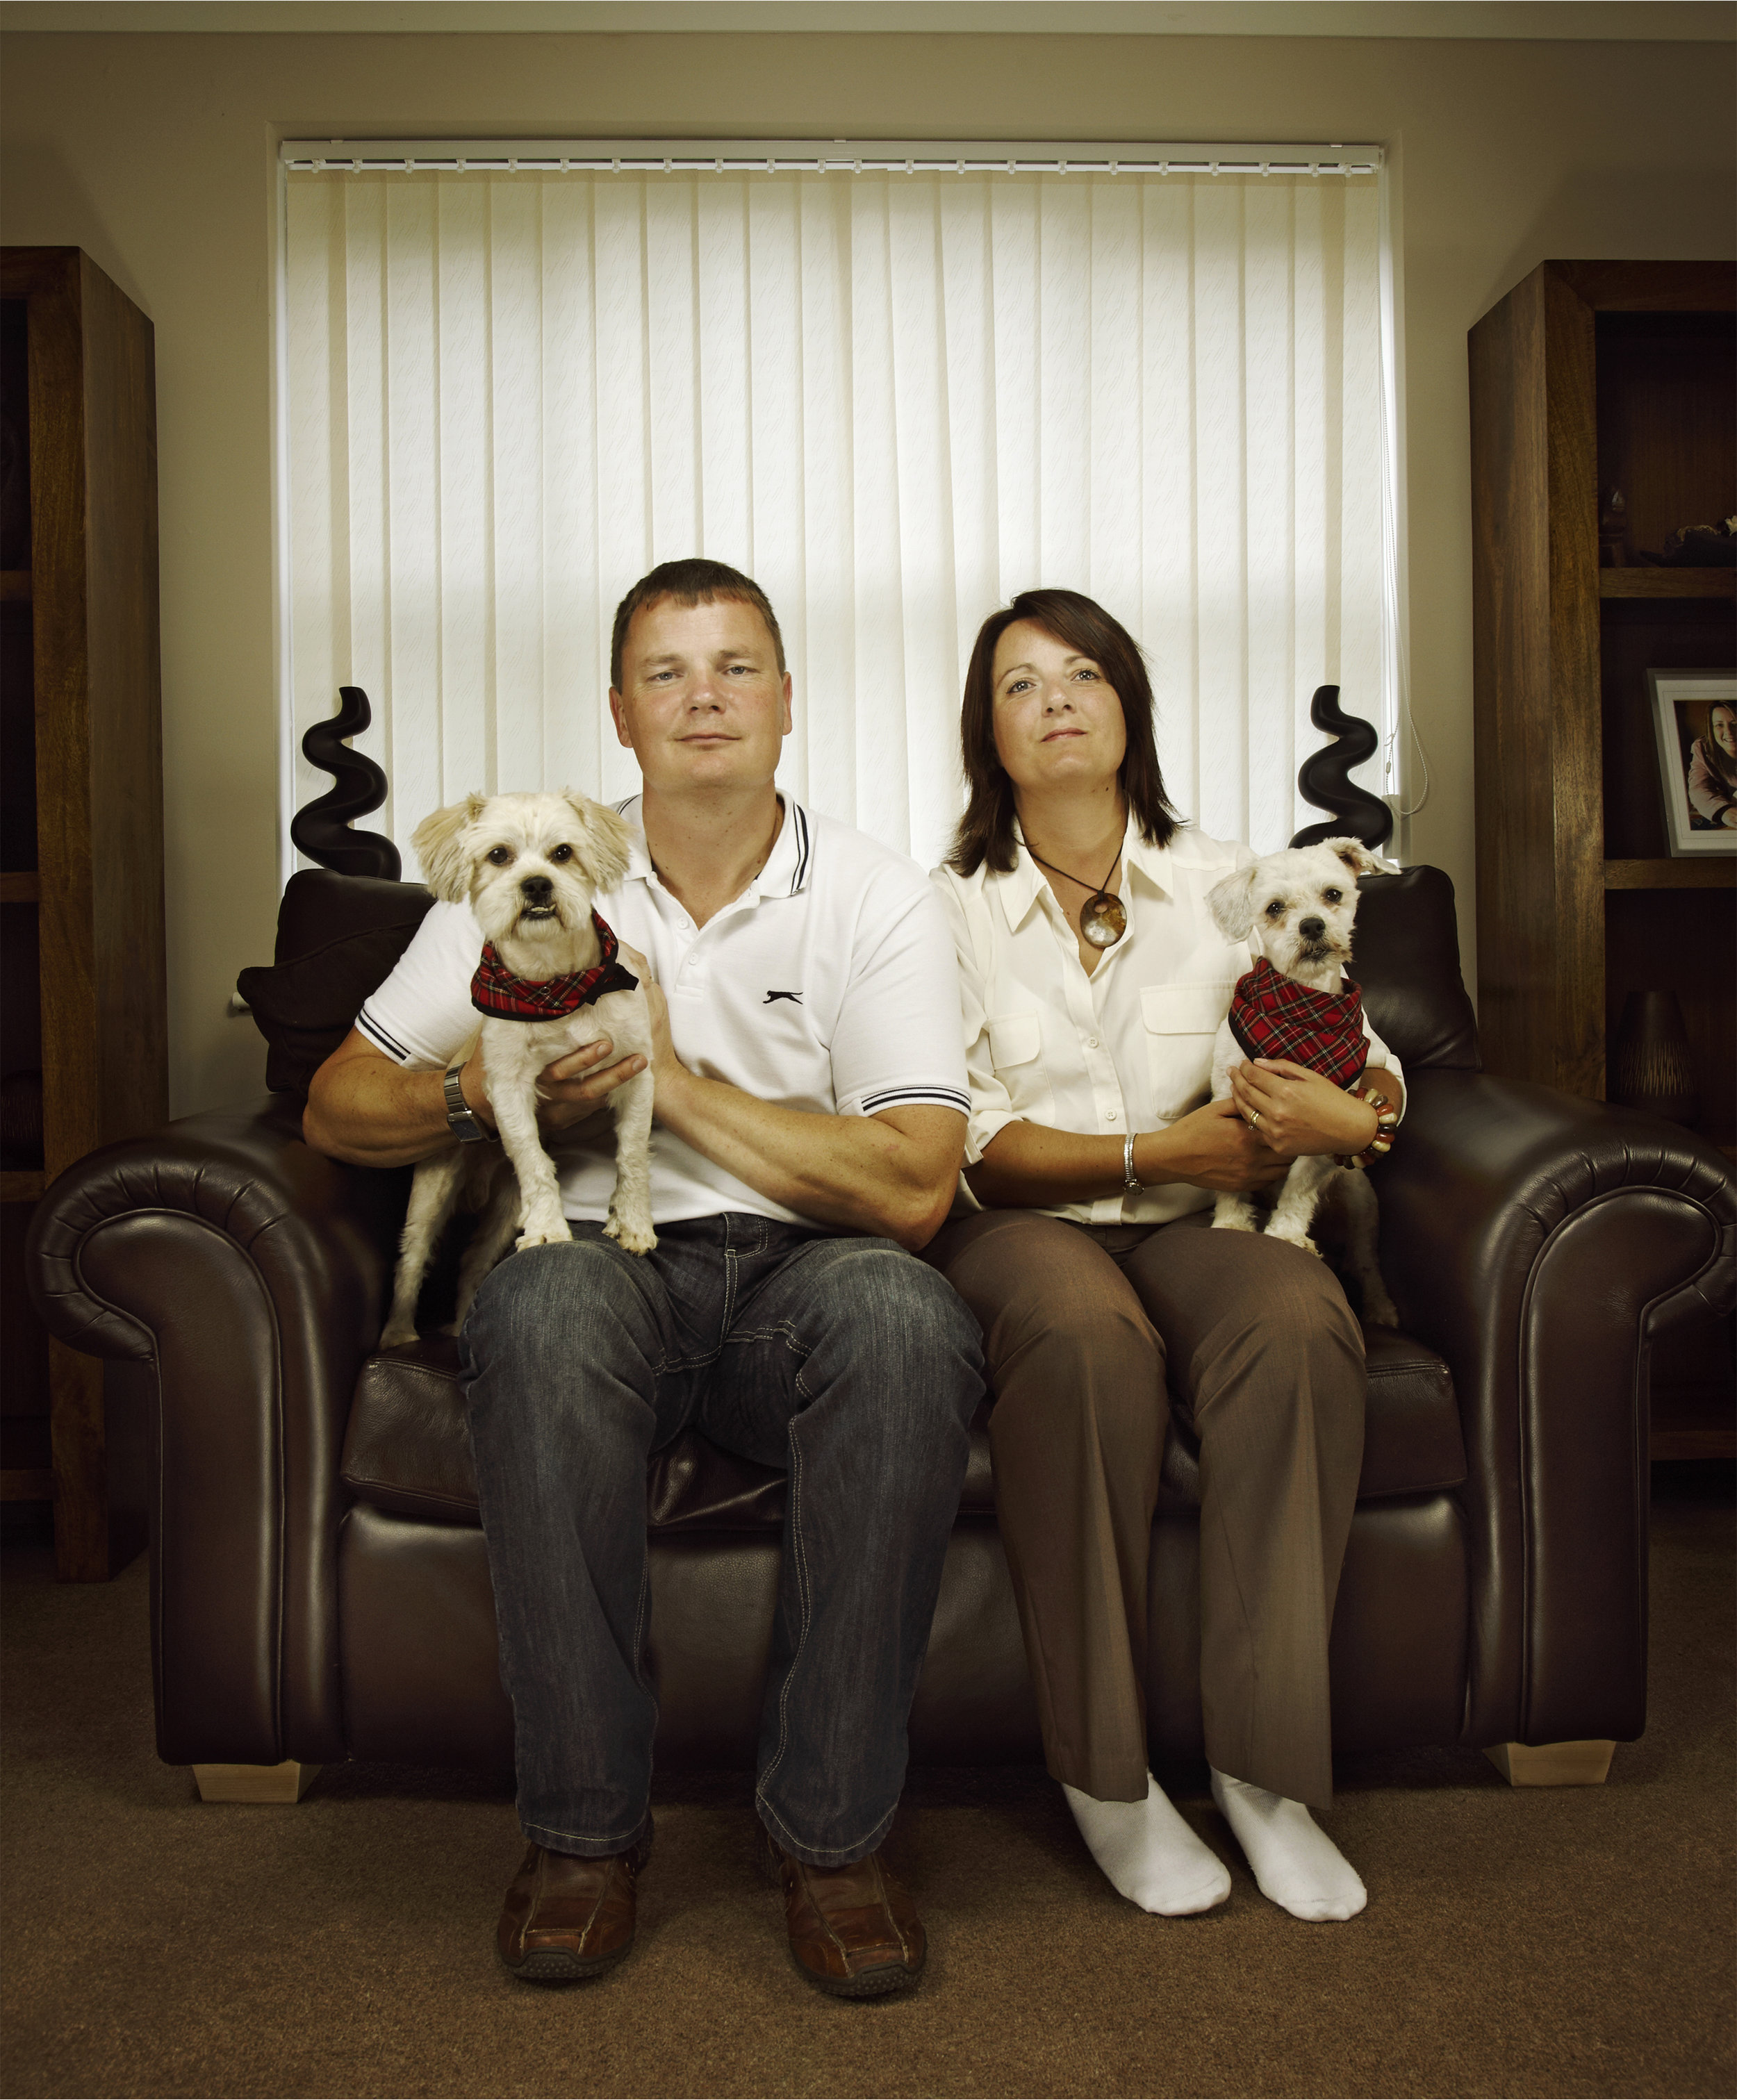 lottery winners with dogs.jpg